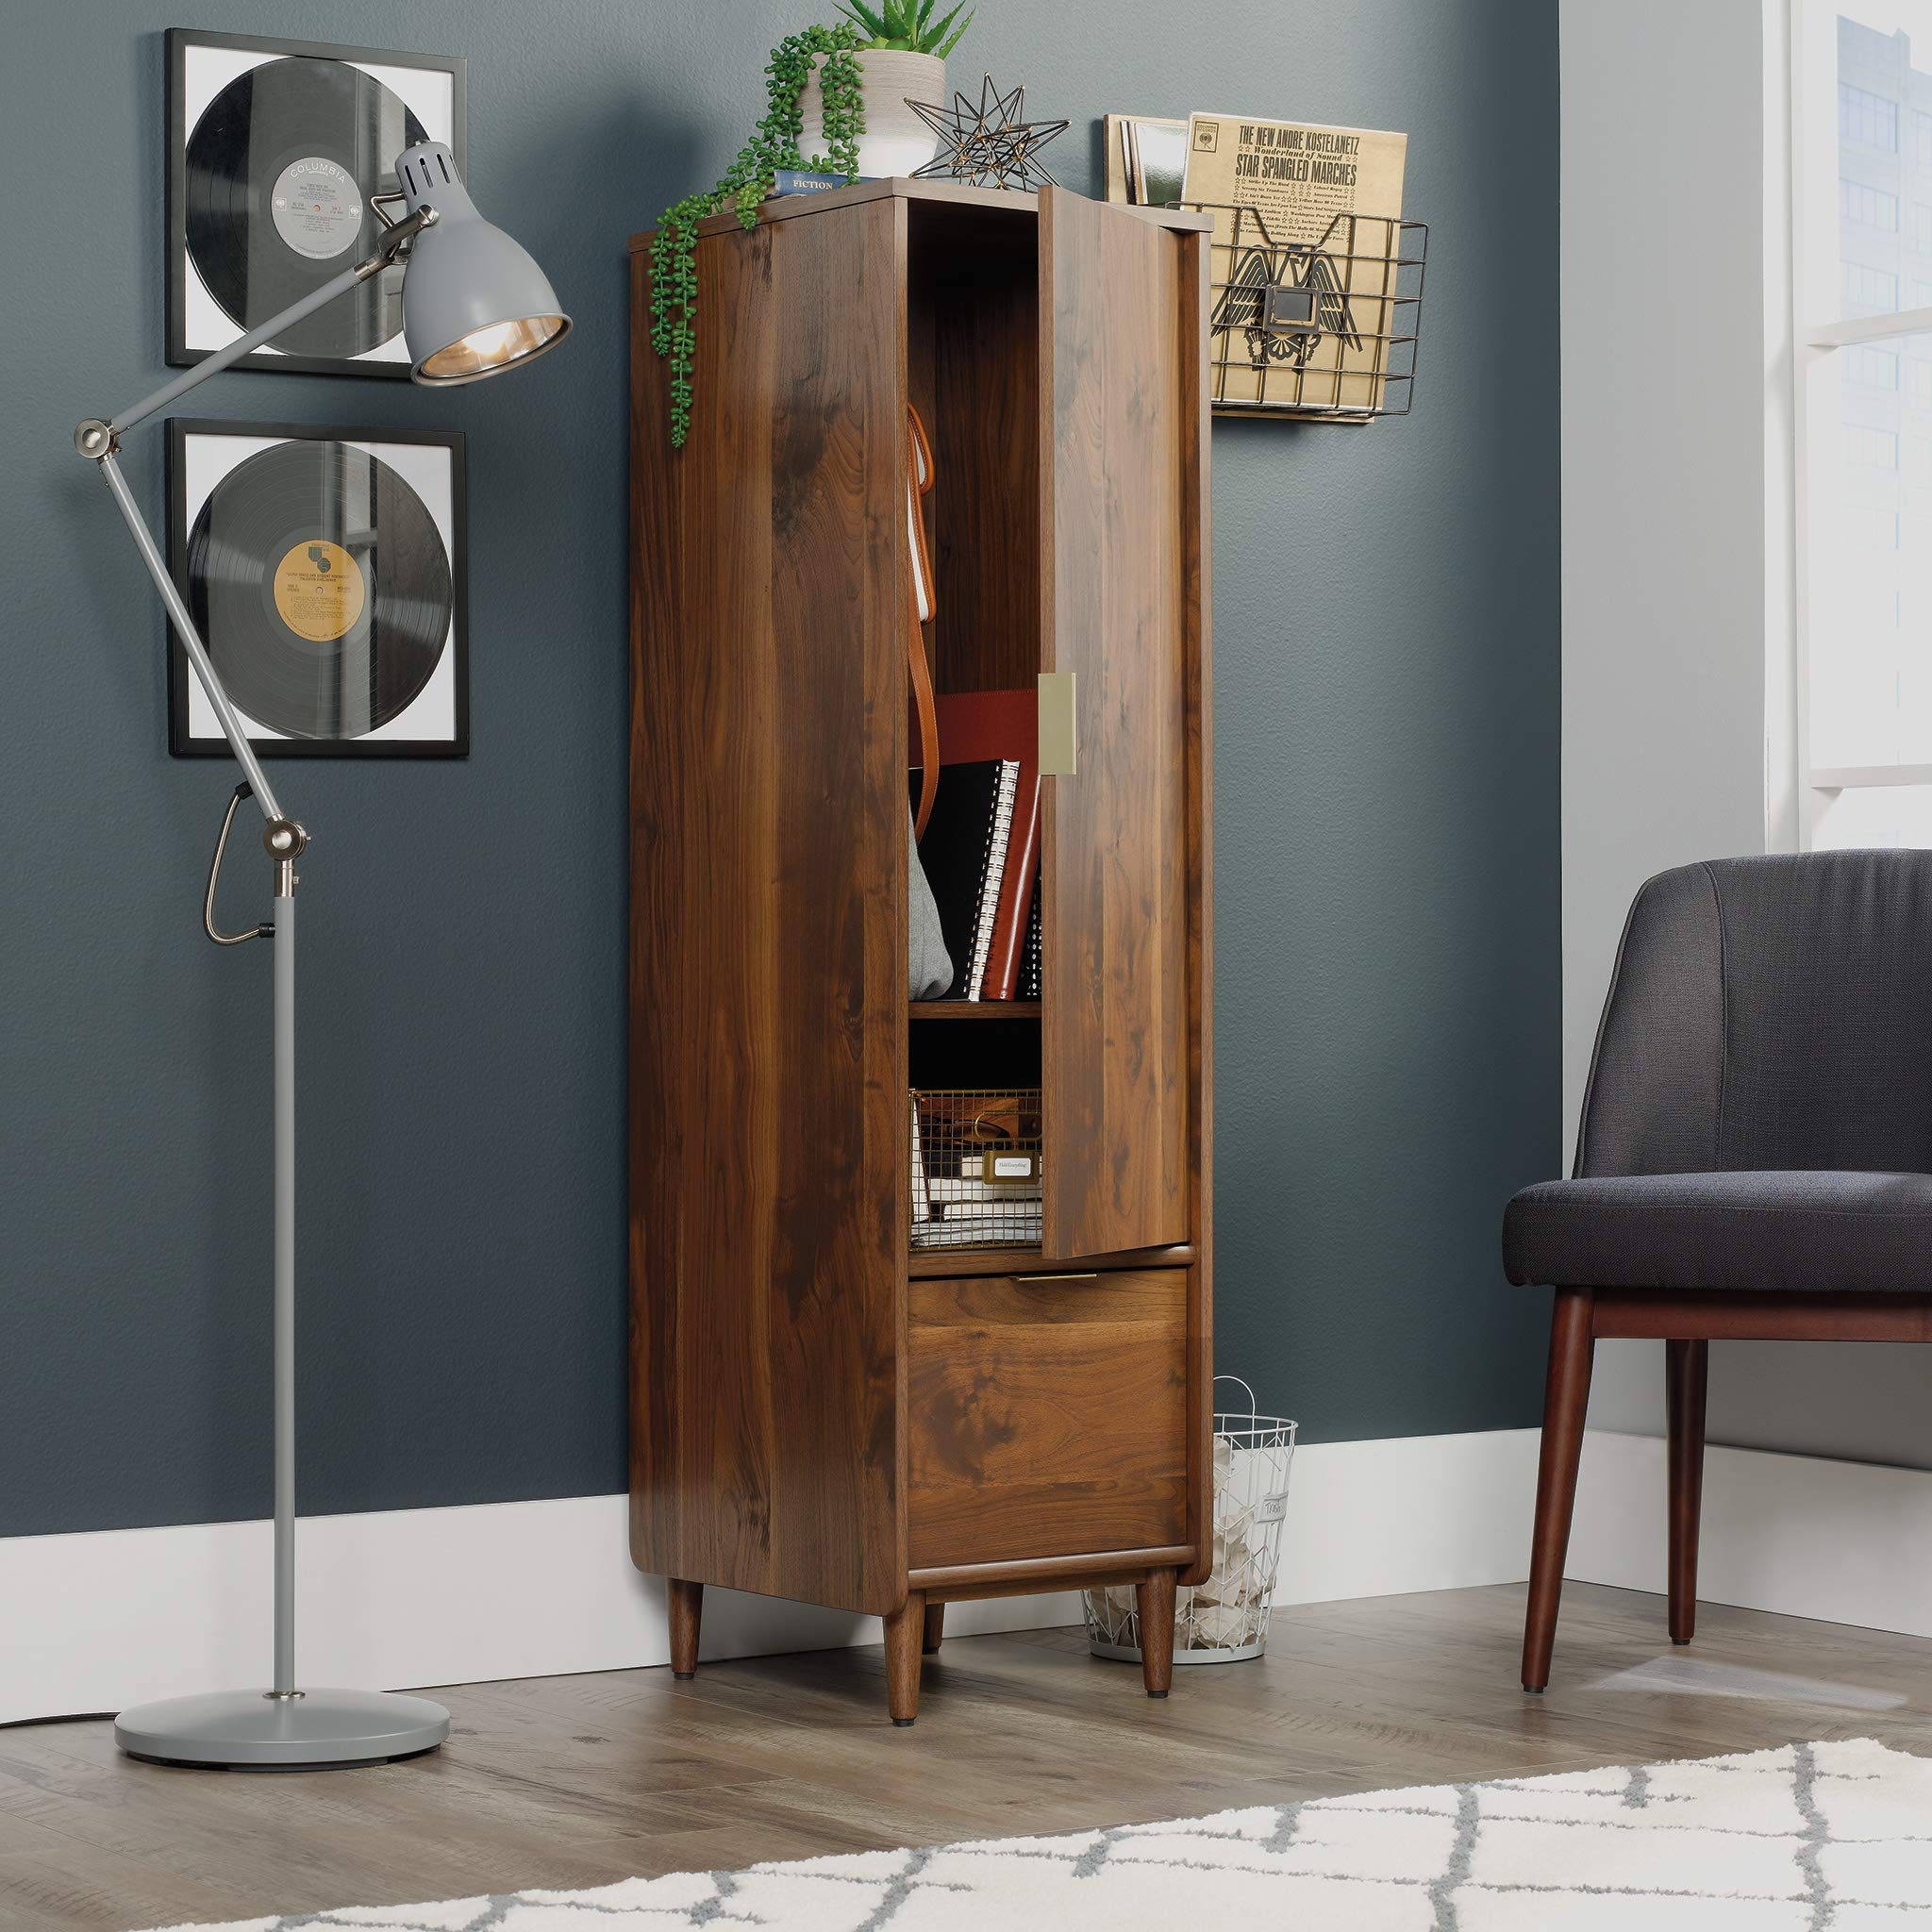 Sauder 421318 Clifford Place Storage Cabinet with File, L: 15.51'' x W: 18.50'' x H: 58.27'', Grand Walnut Finish by Sauder (Image #3)